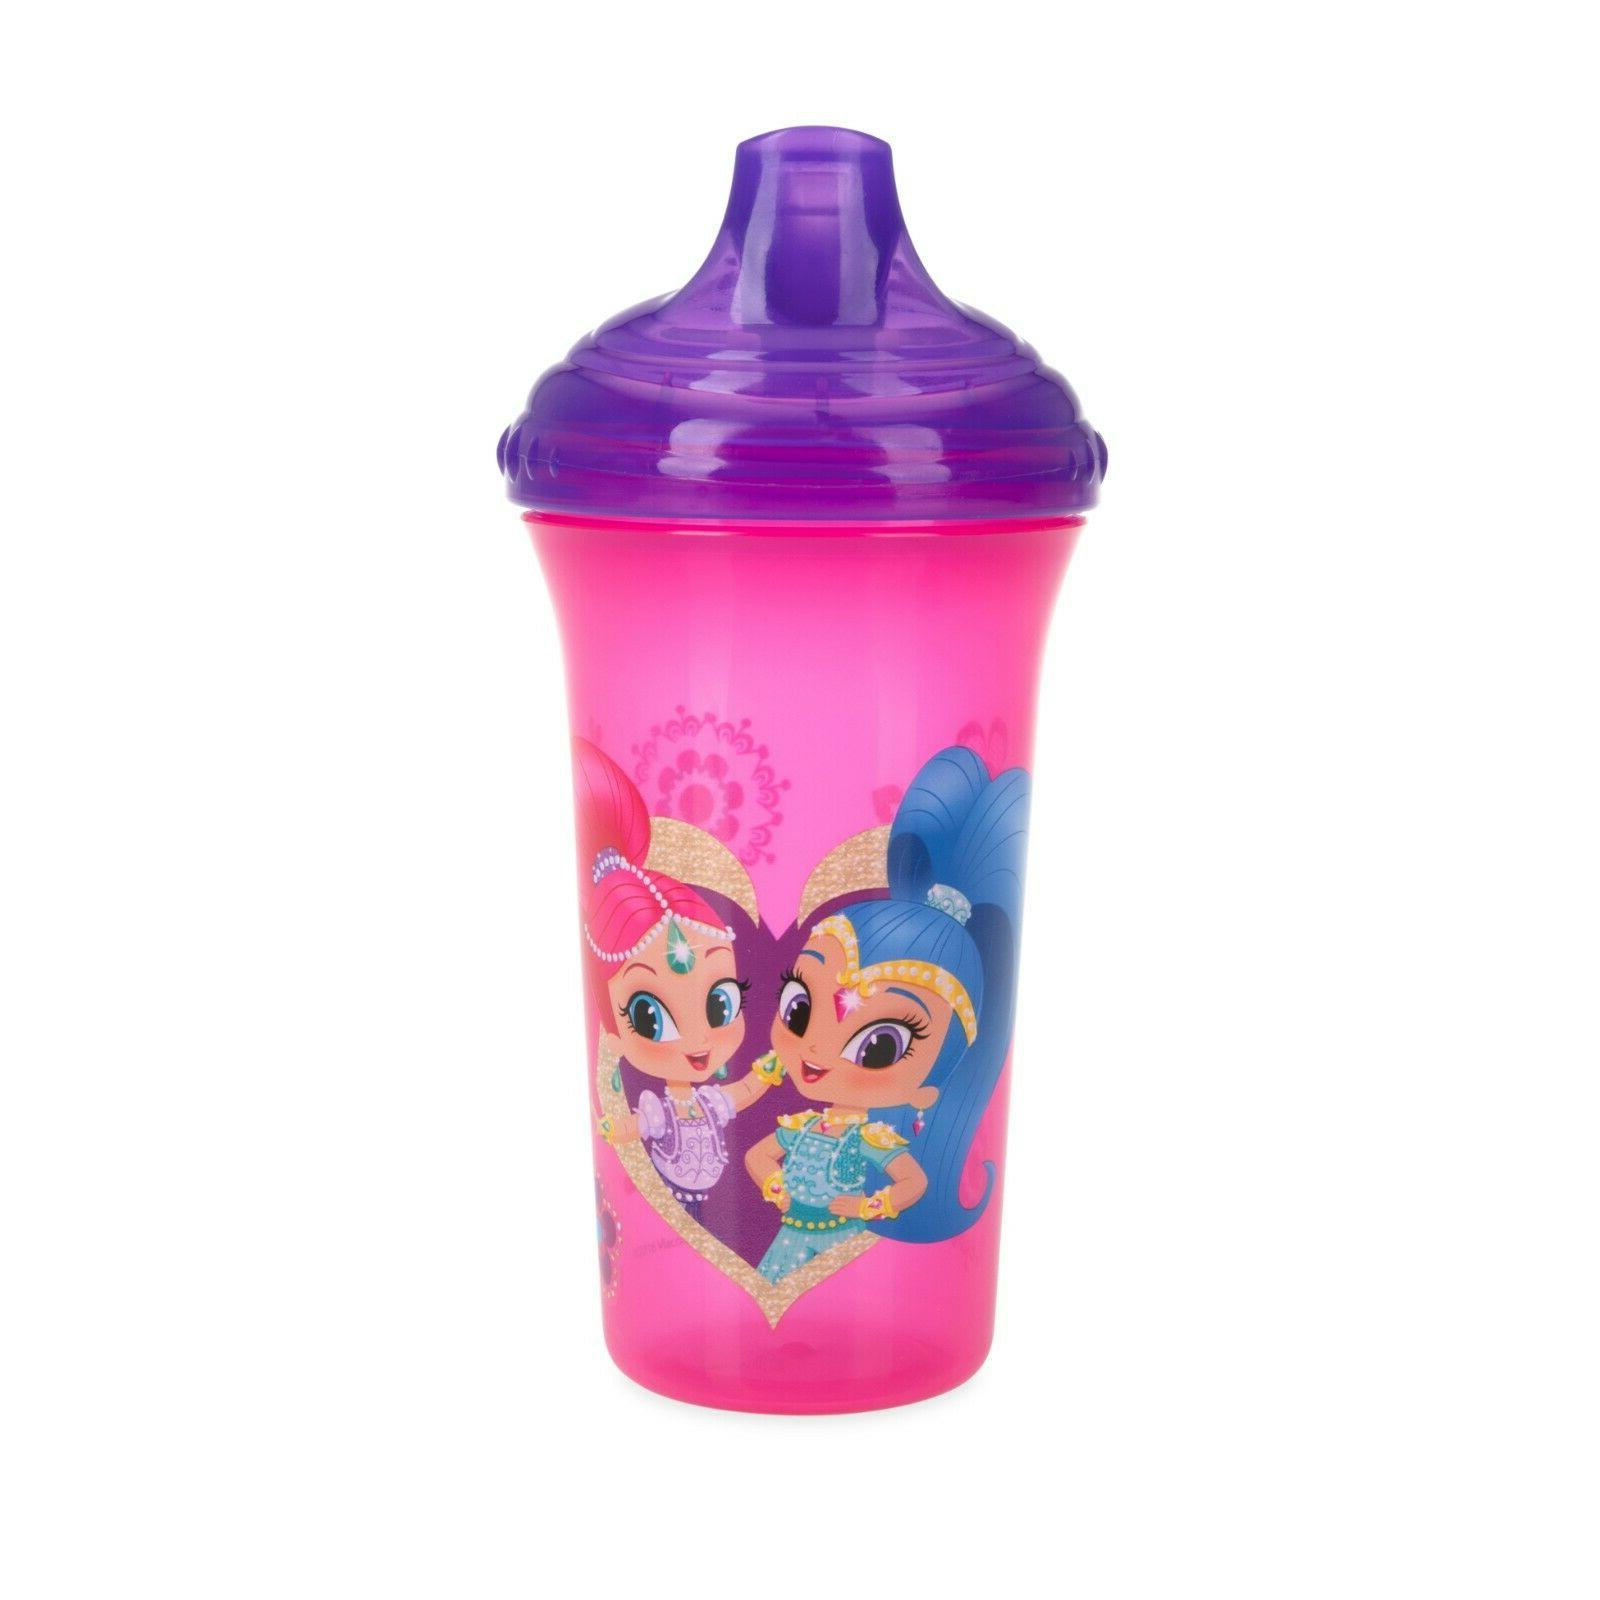 Nuby Nickelodeon & No-spill Easy Sippy Cups Spout